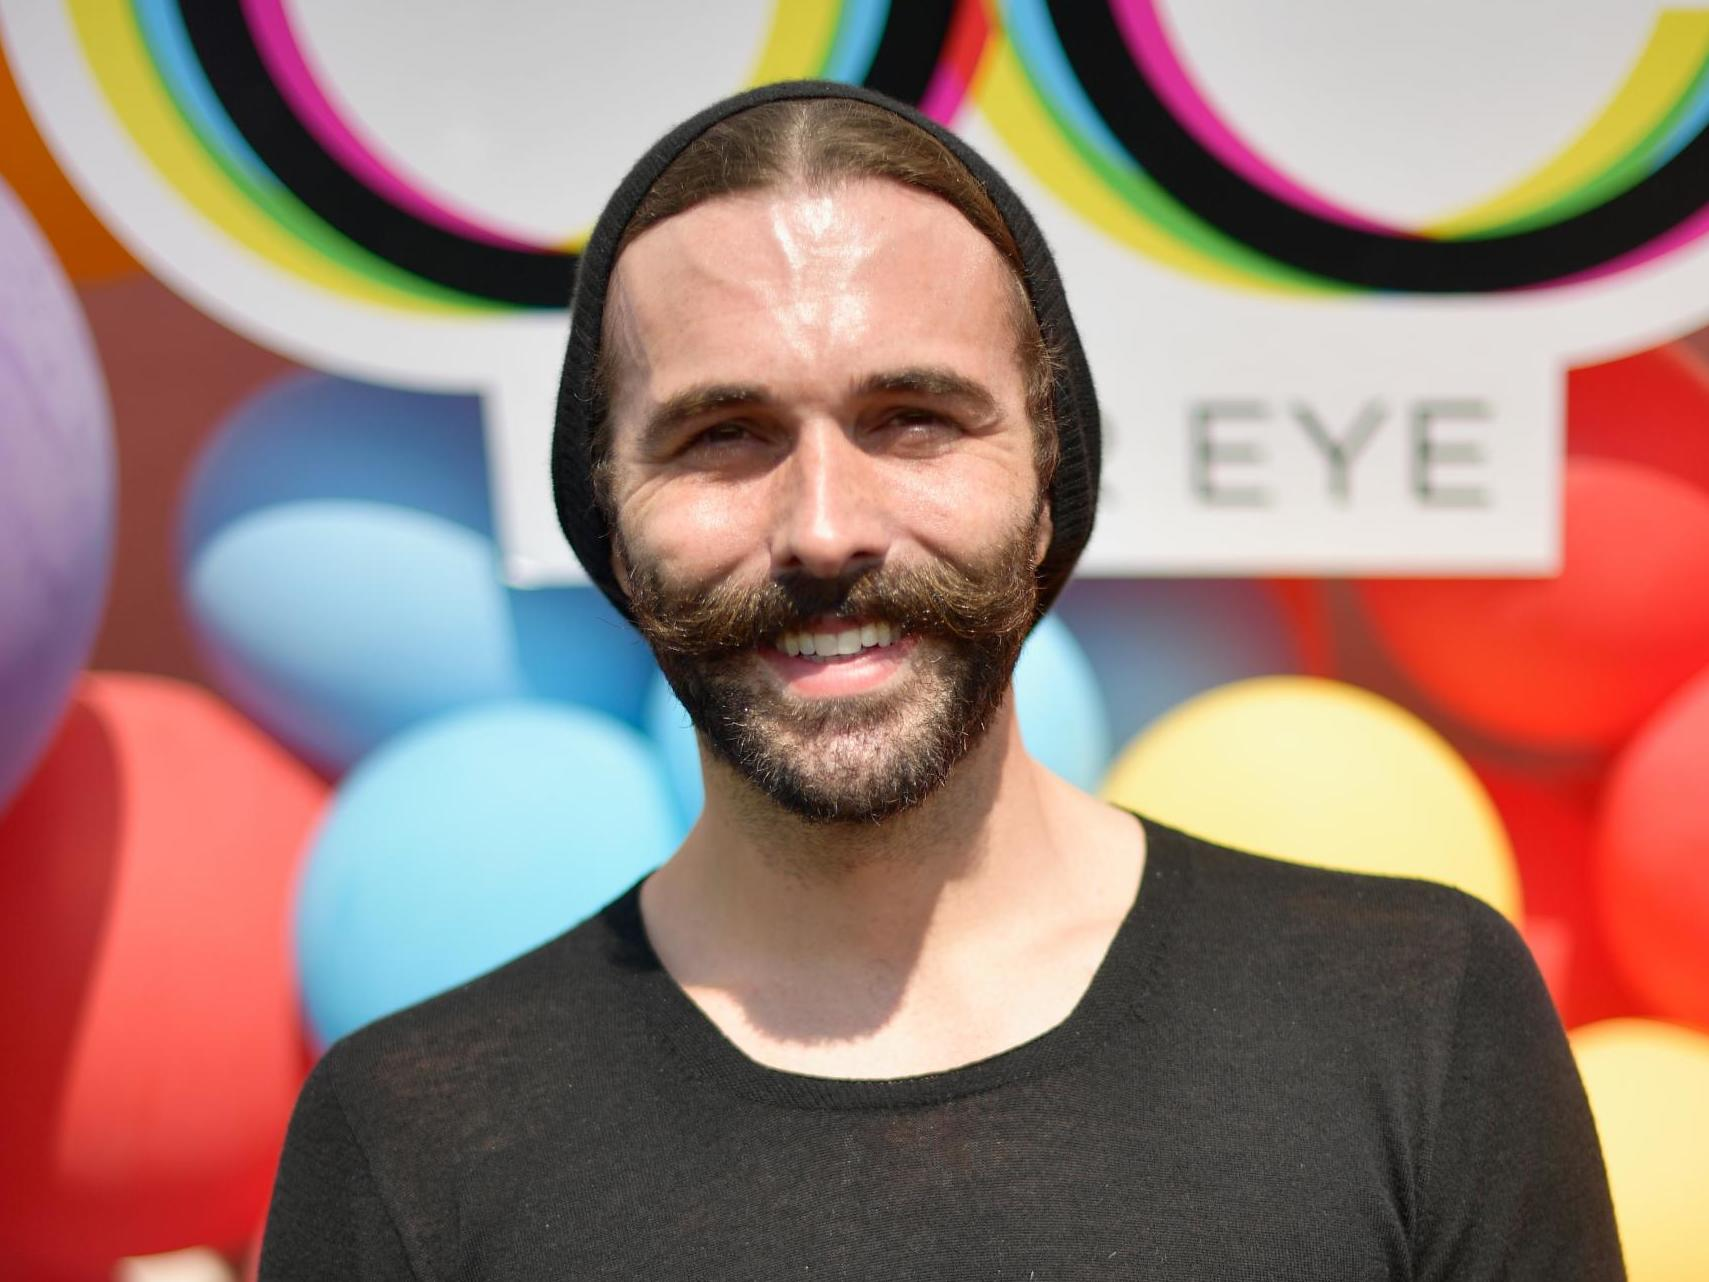 Queer Eye's Jonathan Van Ness taking time to 'rest up' after sharing HIV positive diagnosis